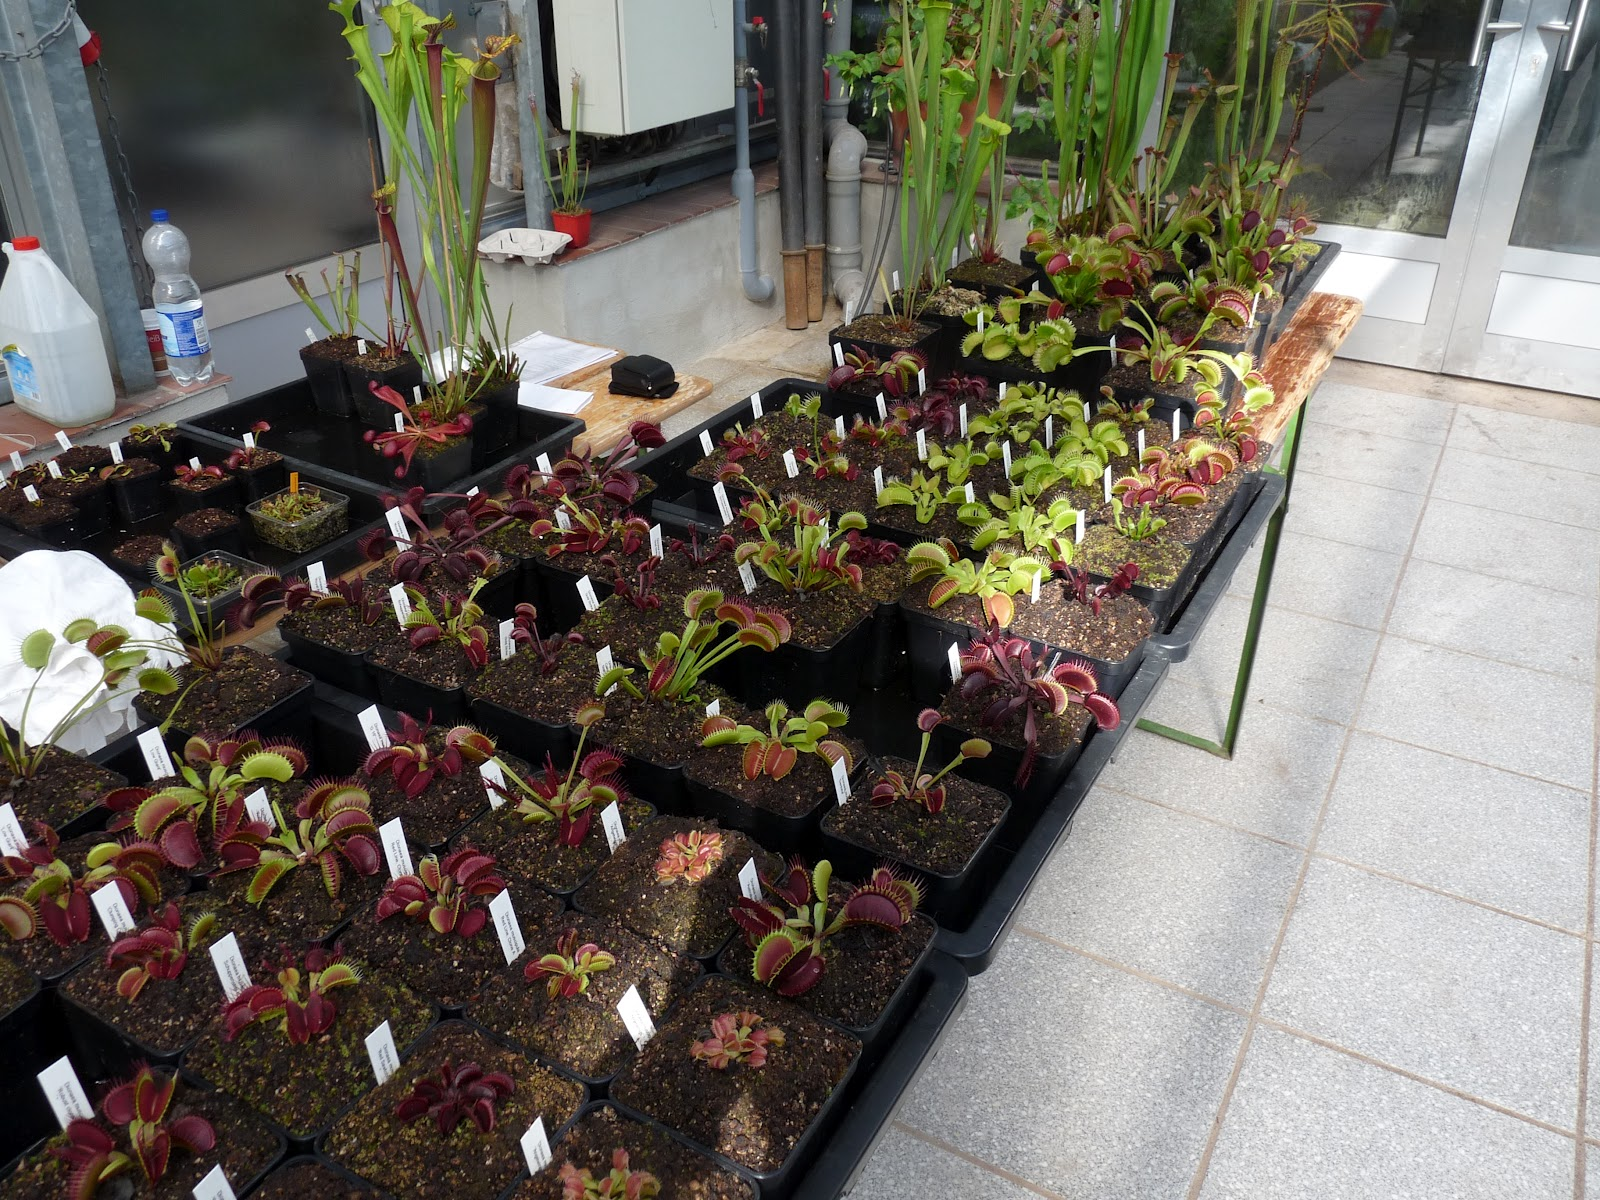 Where to buy carnivorous plants